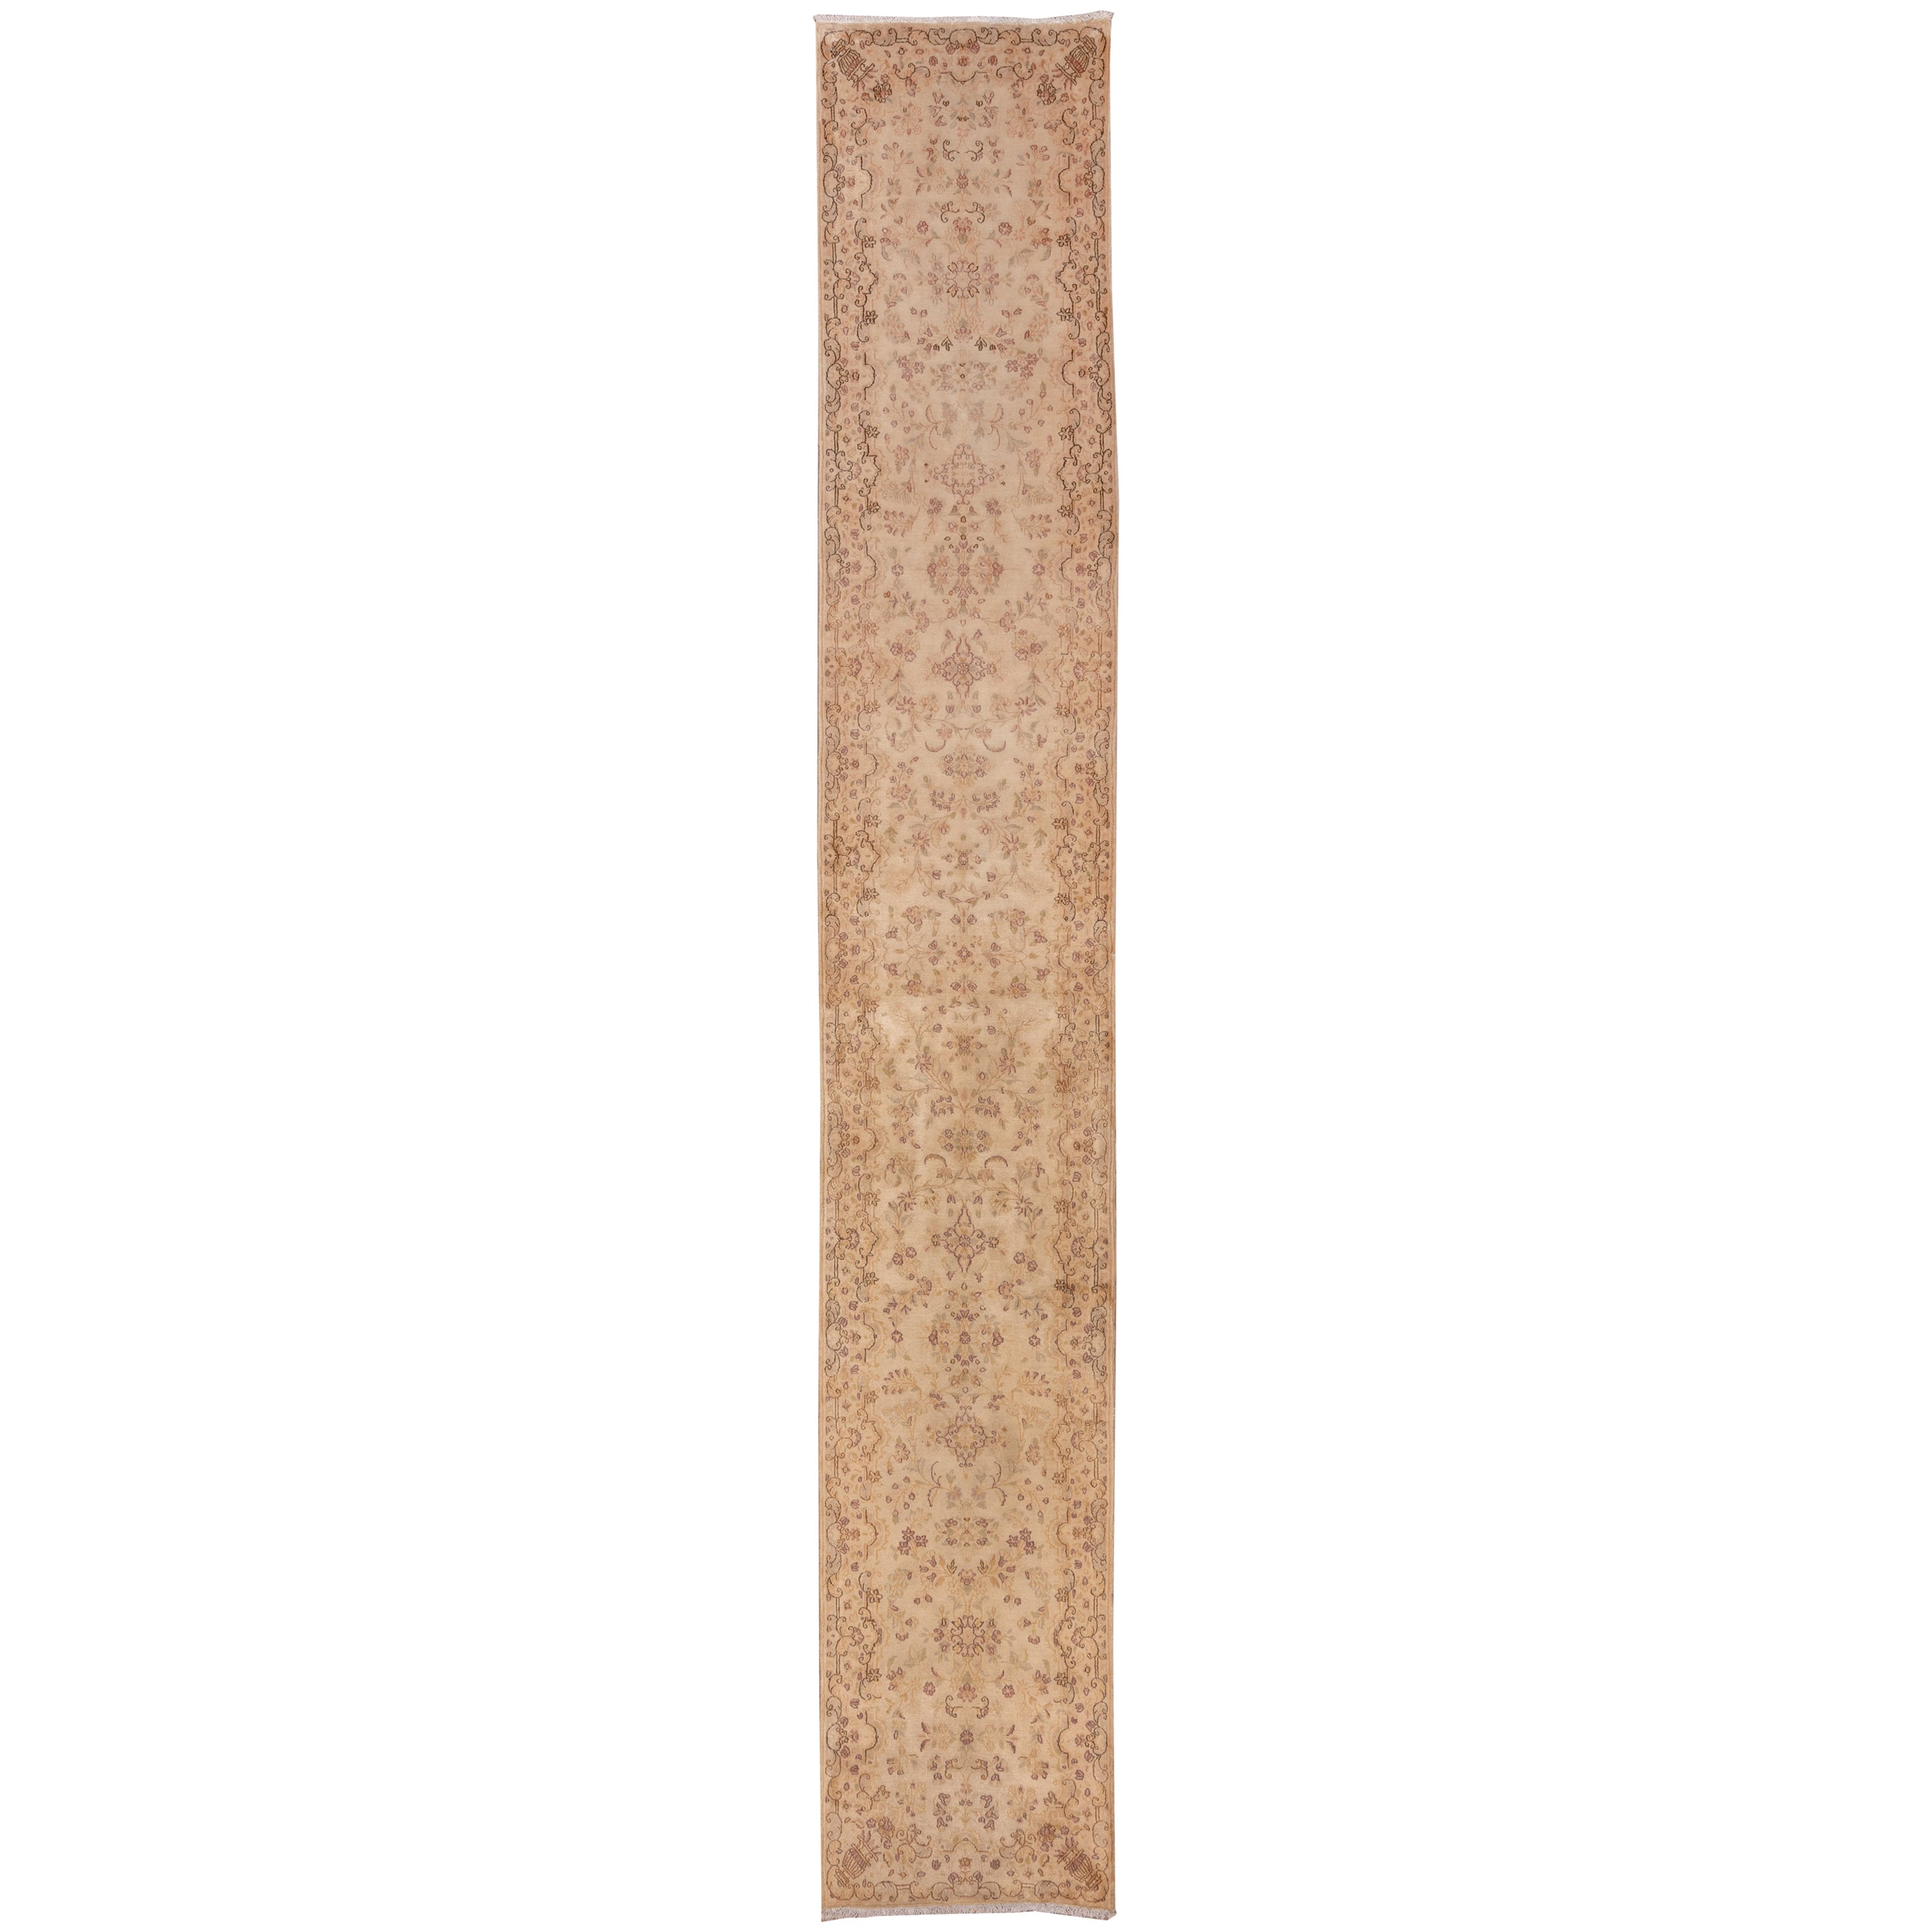 Narrow Antique Kerman Runner